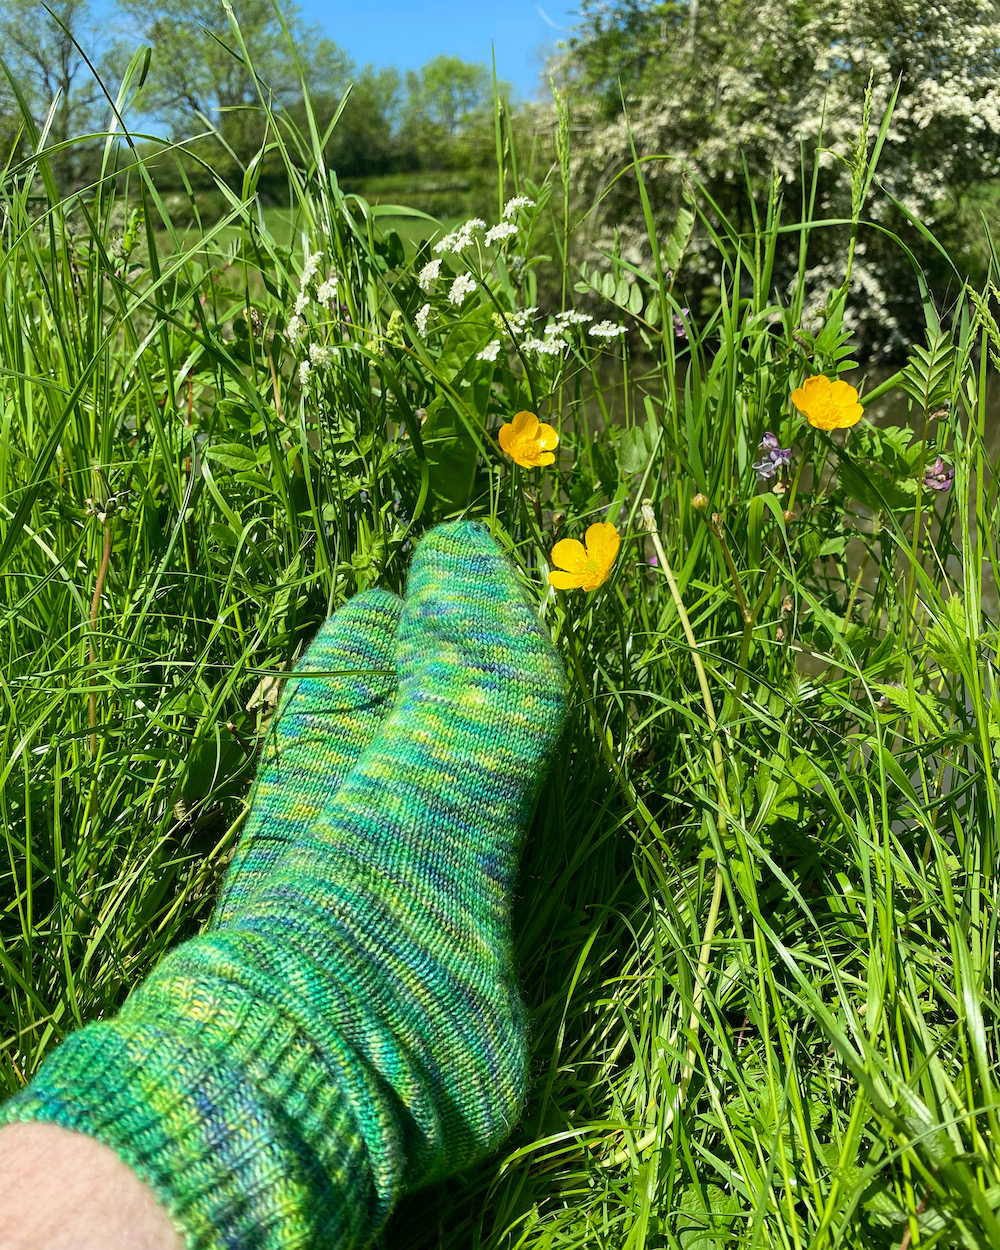 A pair of socks in the Are We There Yet colourway, nestling in some grass and wildflowers